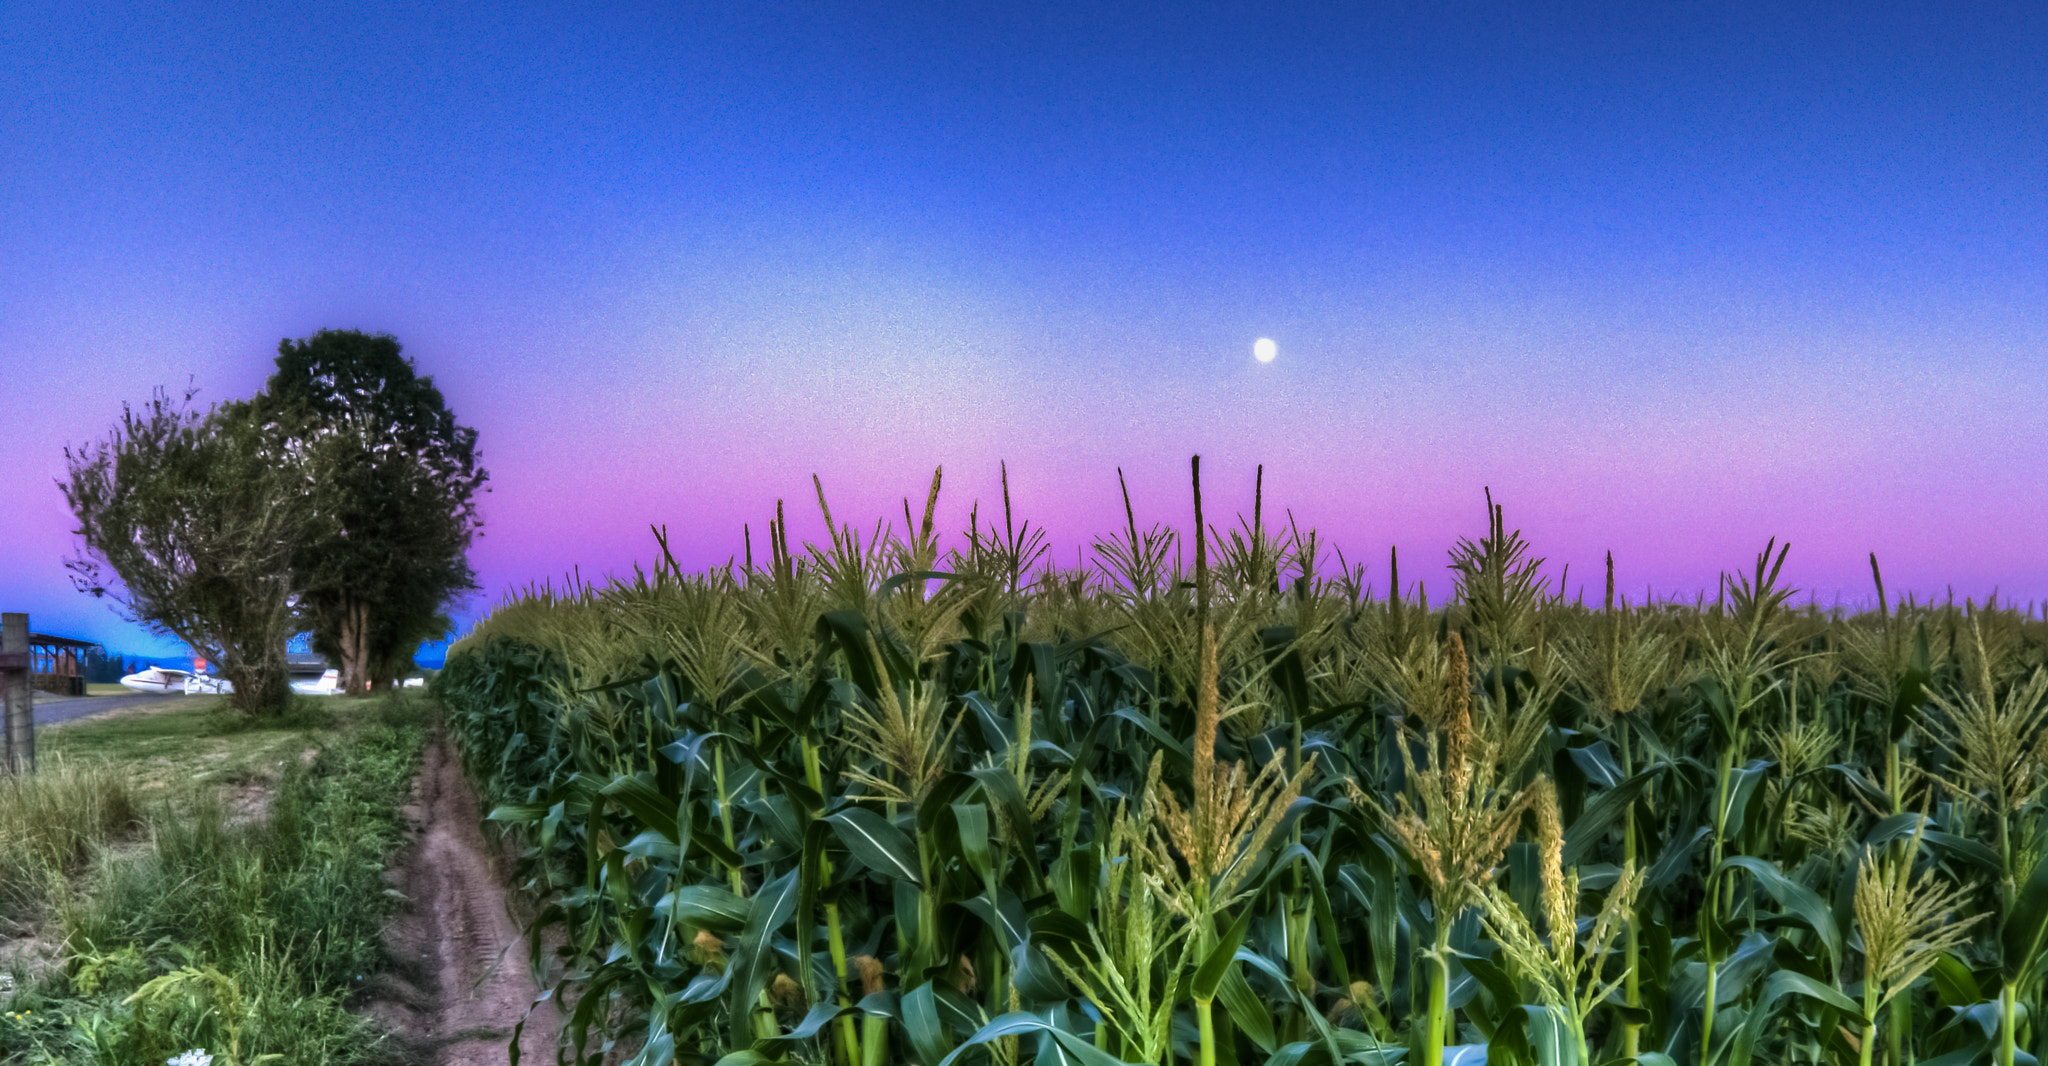 Photograph Moon during sunset by Zach Evers on 500px